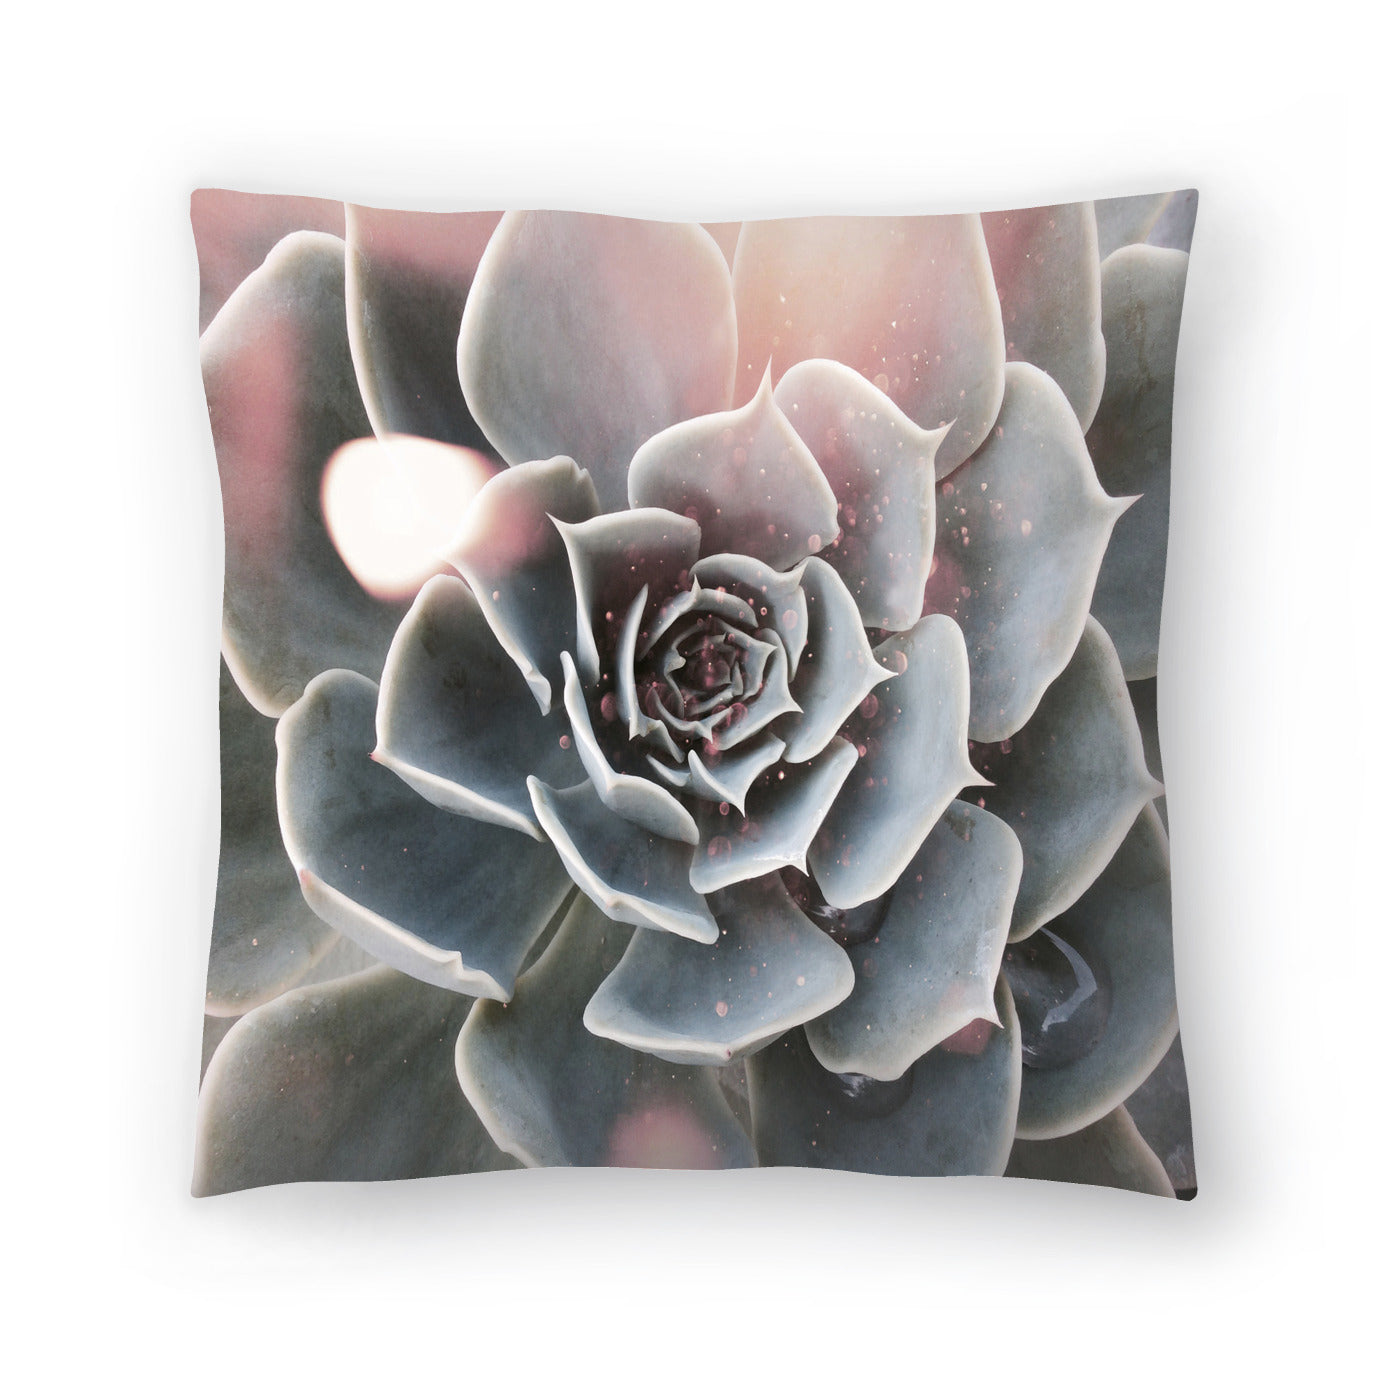 Shiny Succulent by Emanuela Carratoni Decorative Pillow - Decorative Pillow - Americanflat